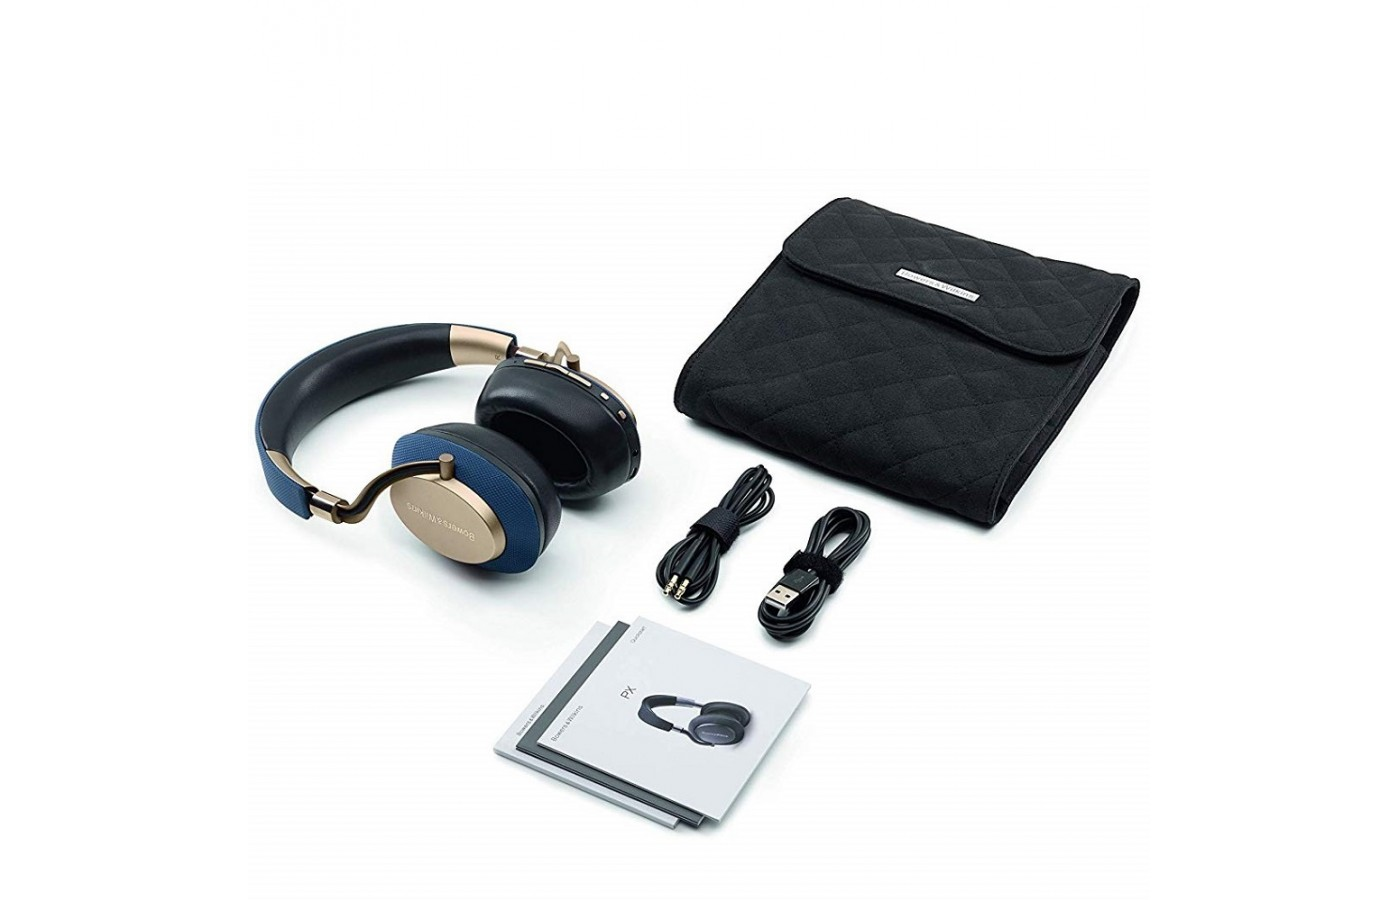 The Bowers & Wilkins PX comes with charging accessories and a protective bag for easy travel.